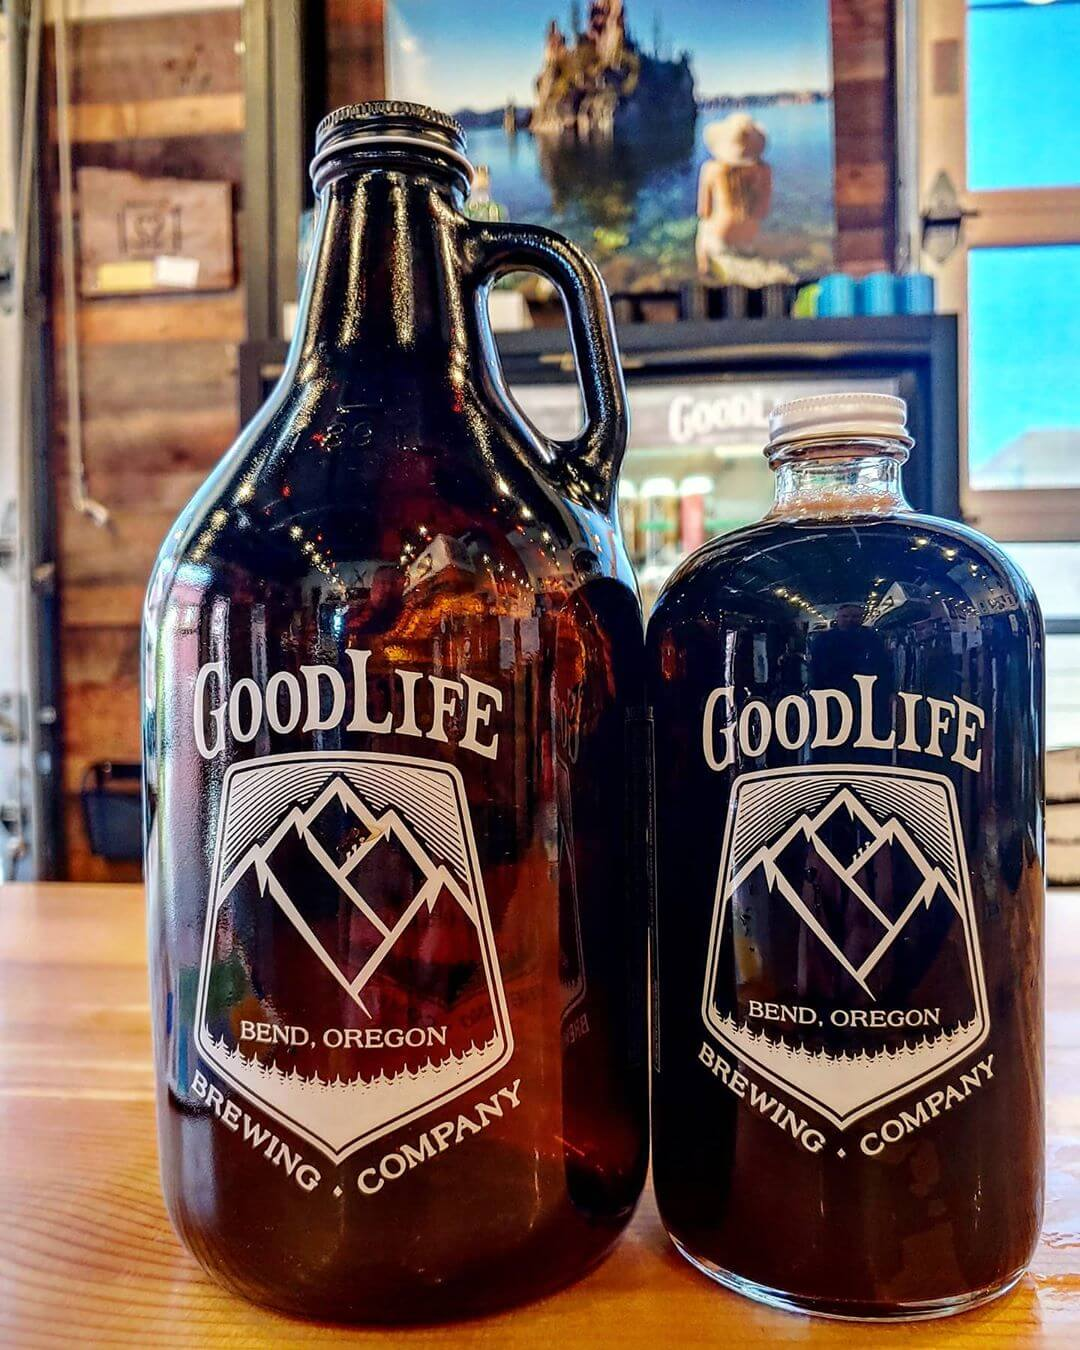 32oz Growlettes and 64 Growlers are back in stock! Lots of great deals on our draft beers to-go. Open Daily Noon – 7pm for Beer To Go!  #craftbeerlover #cannedbeer #beerme #beertography #beerstagram #growler #goodlife